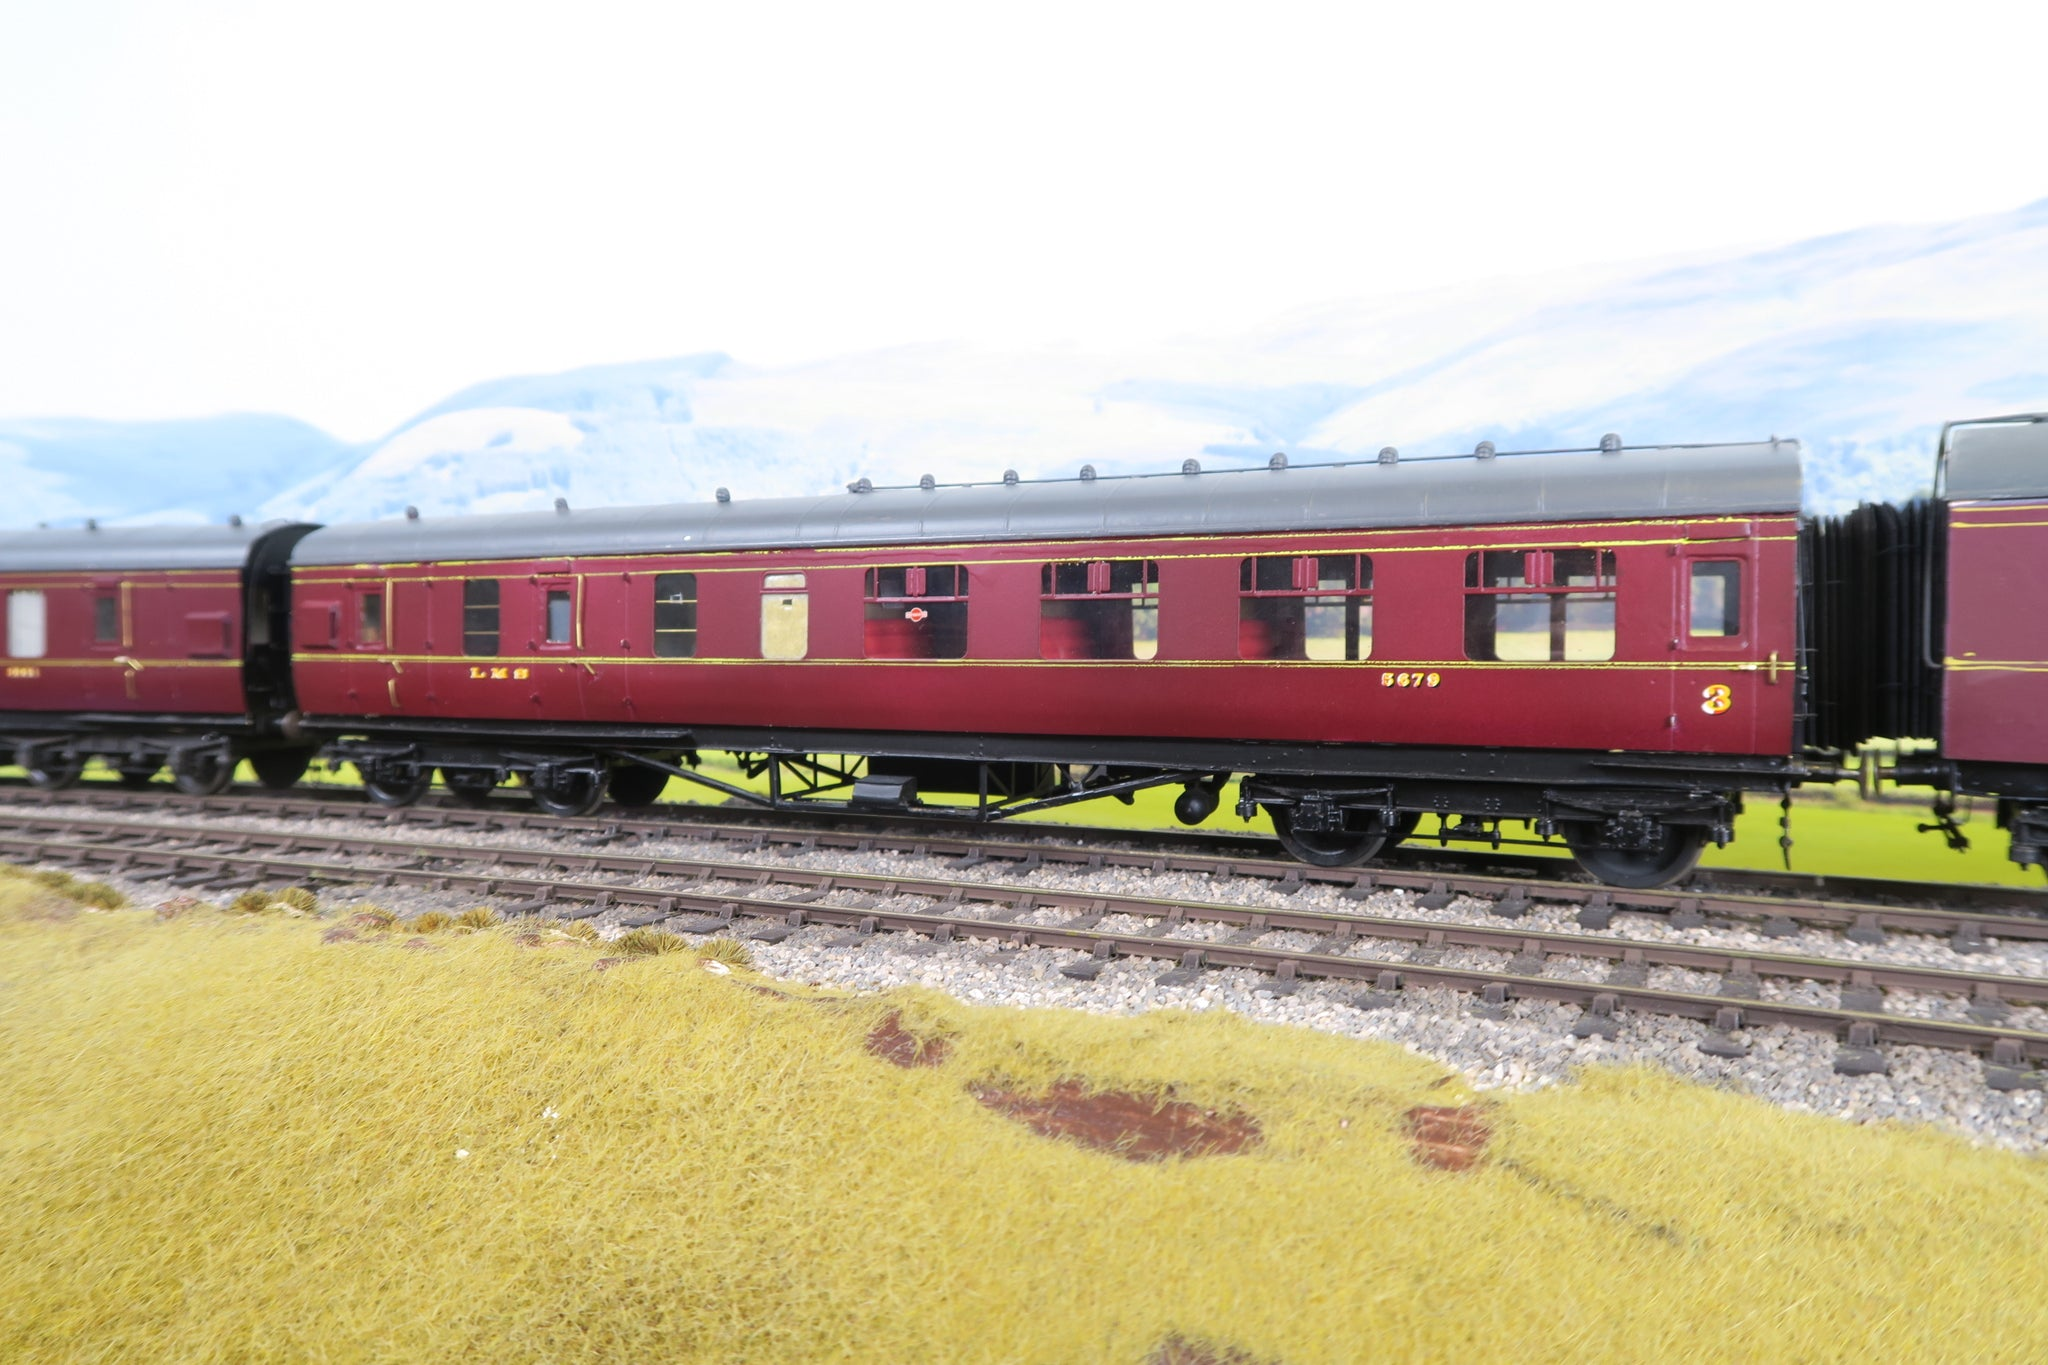 7mm Finescale O Gauge Kit Built LMS Lined Maroon Brake Third Corridor Coach '5679'